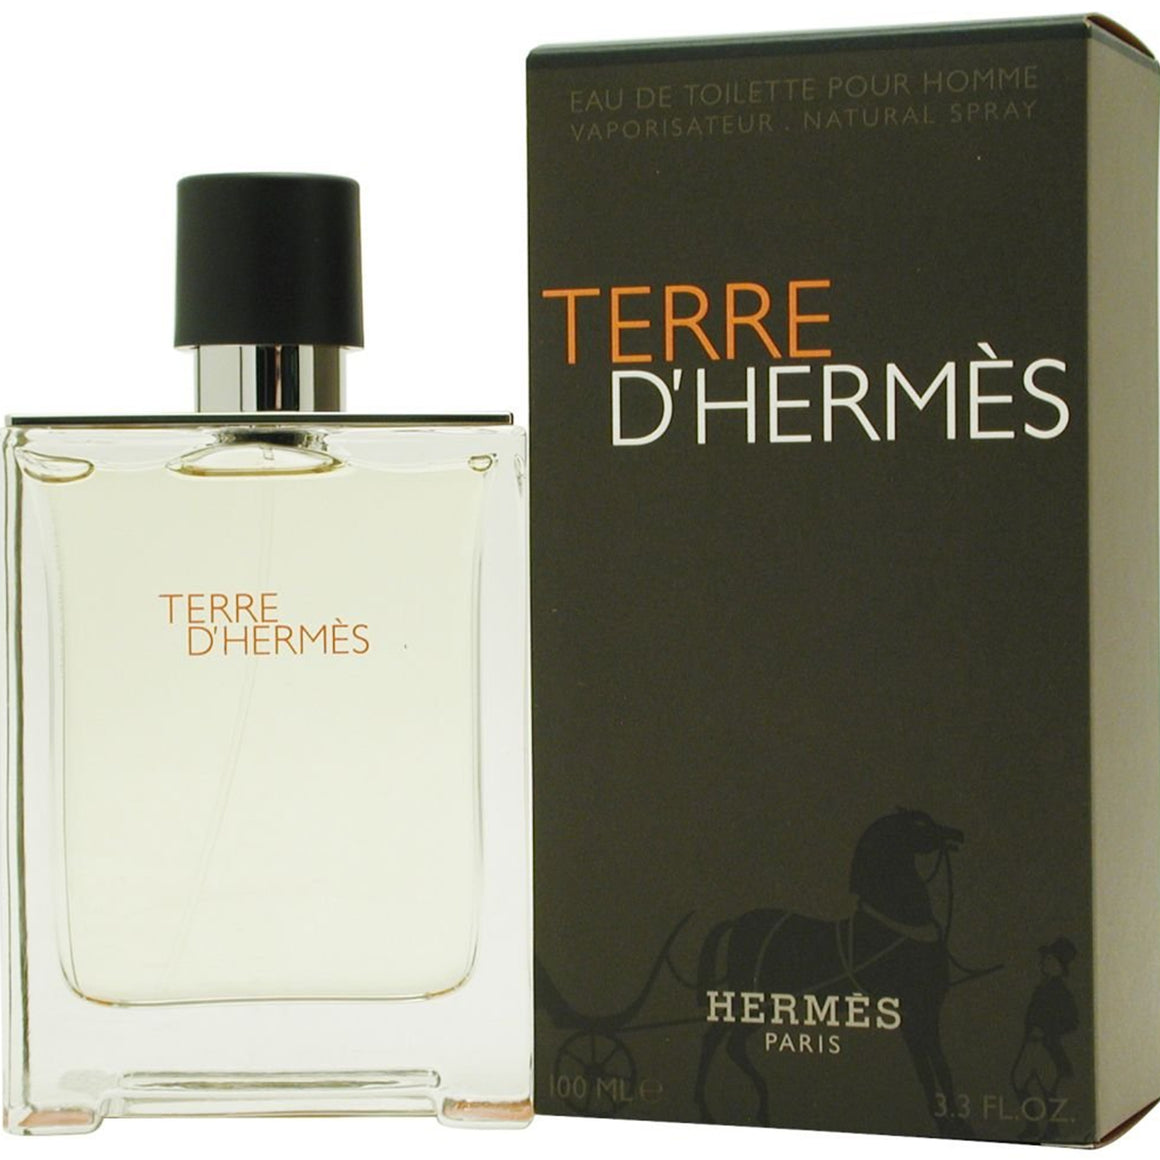 Hermes Terre D'Hermes Eau de Toilette spray for Men, 3.3 Ounce